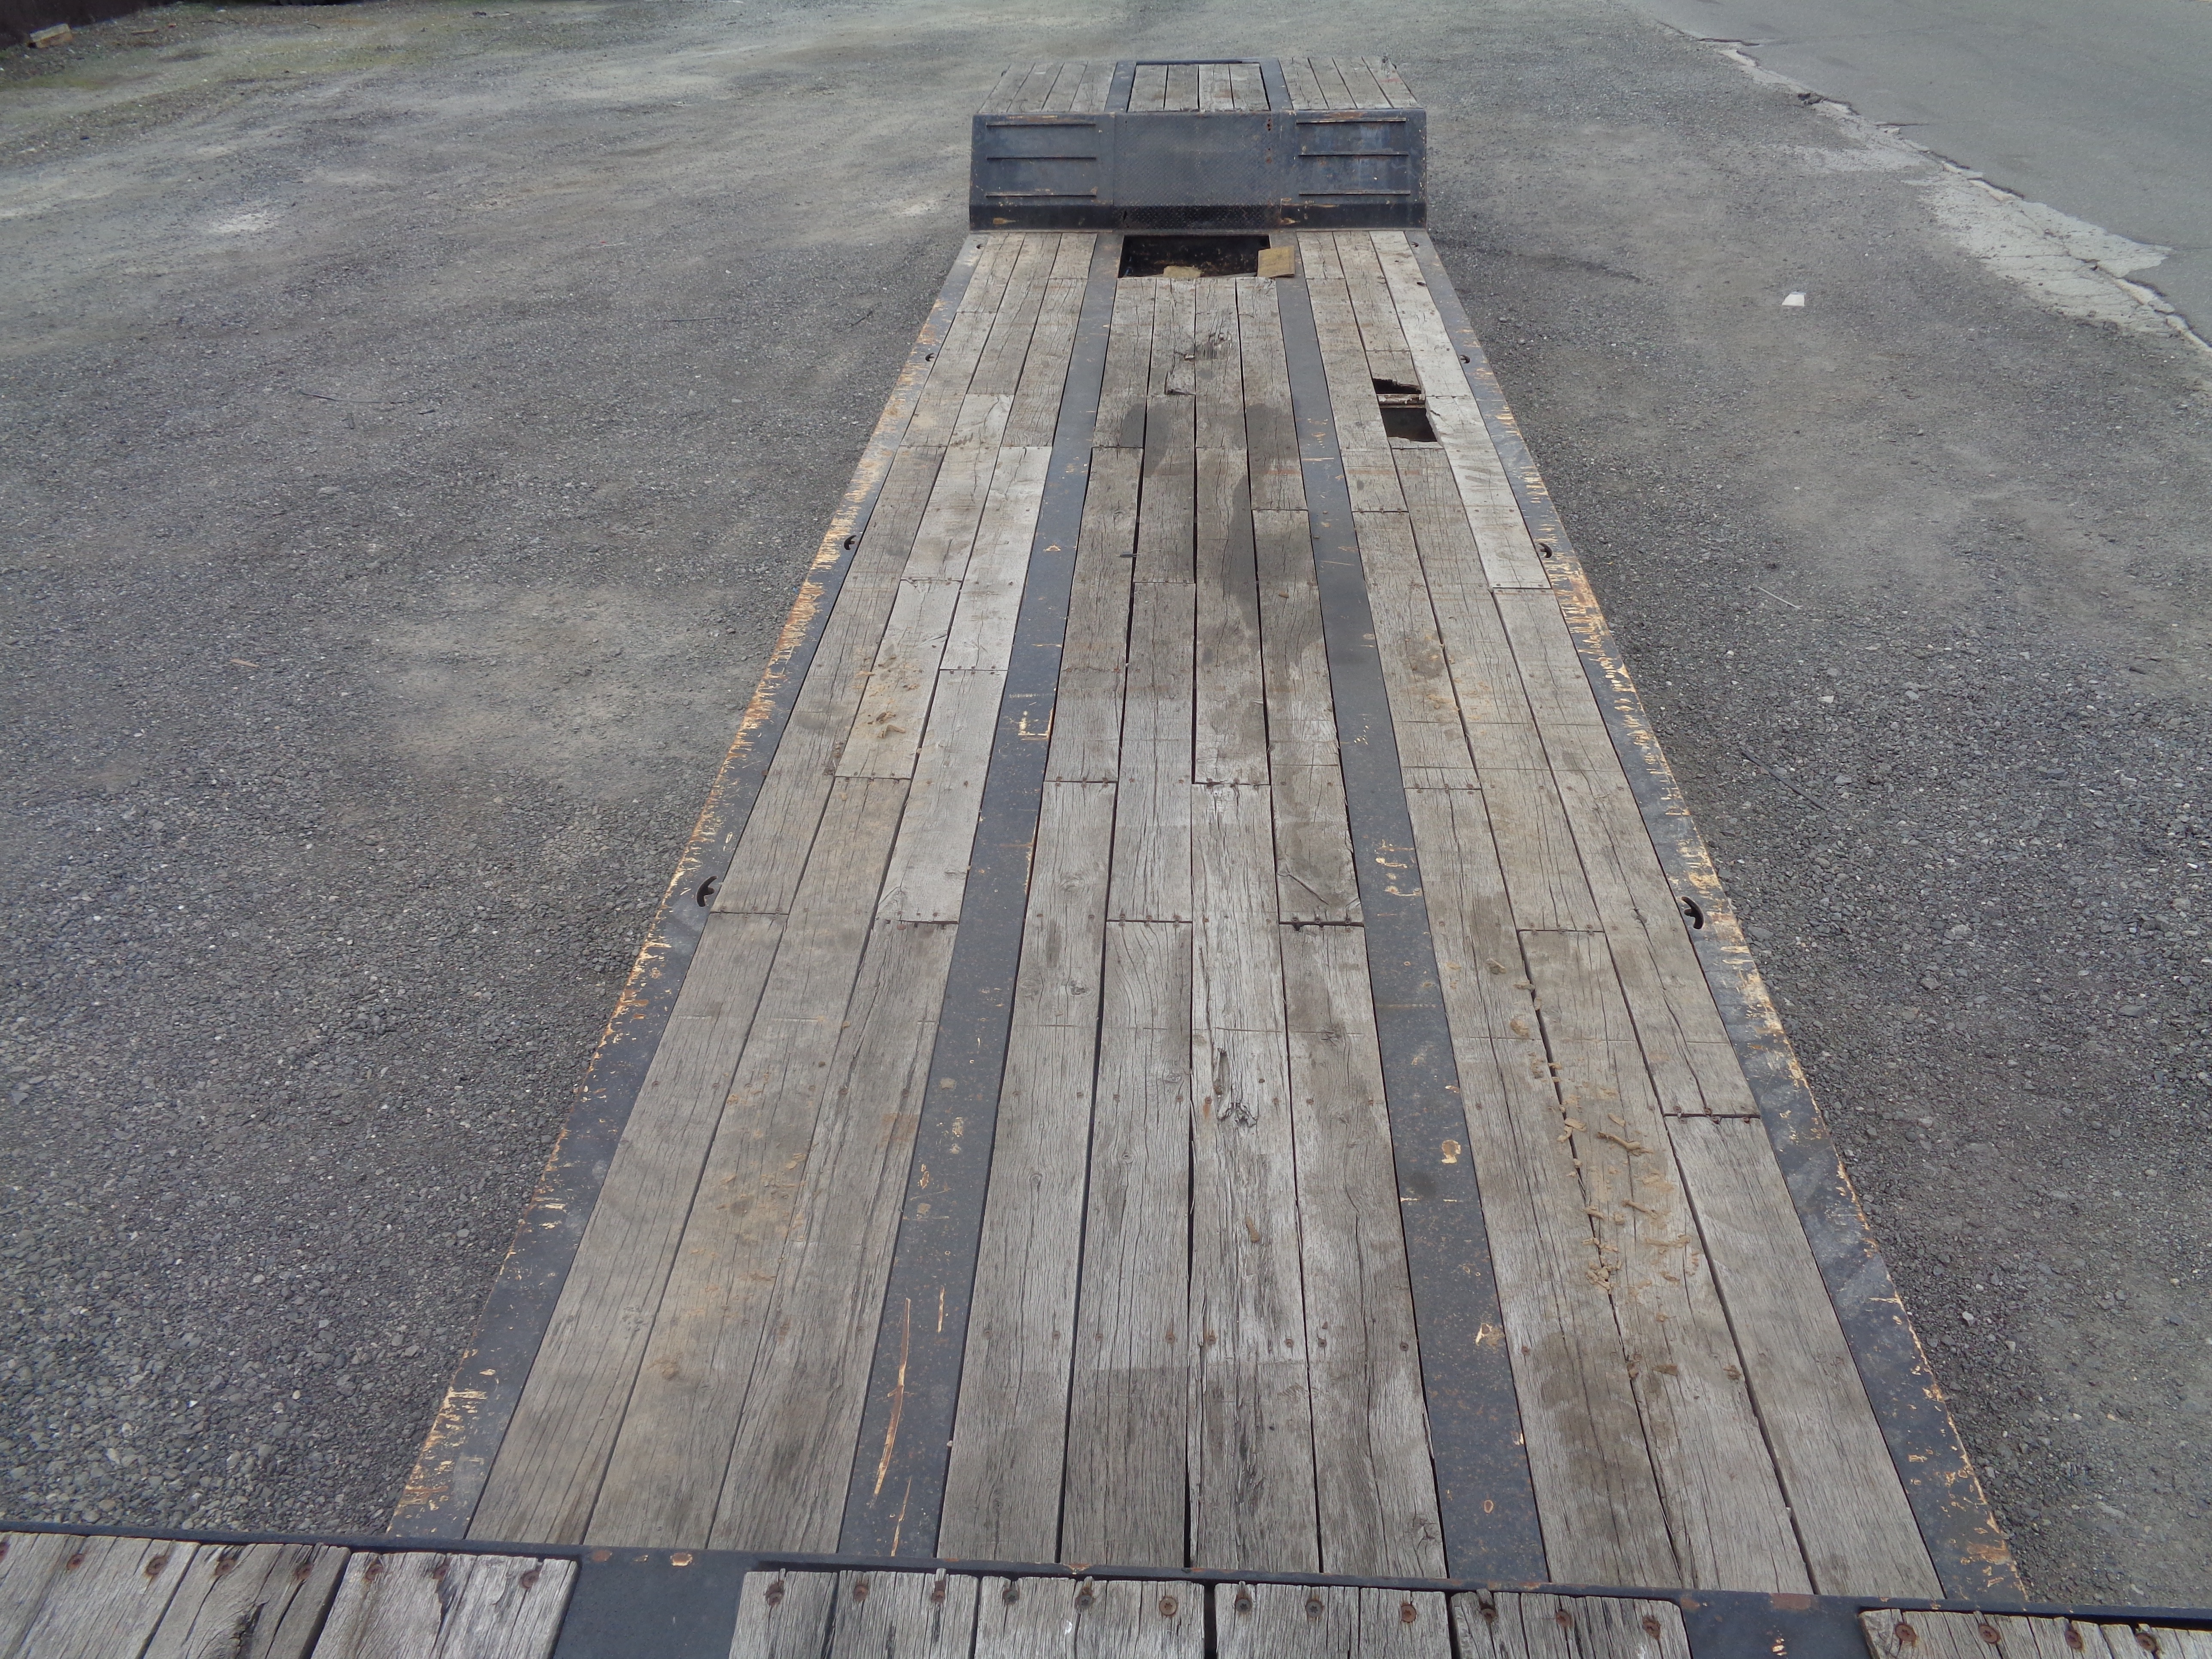 Lot 50 - 2005 Specialized XL601FG RGN Lowboy Equipment Flatbed Trailer